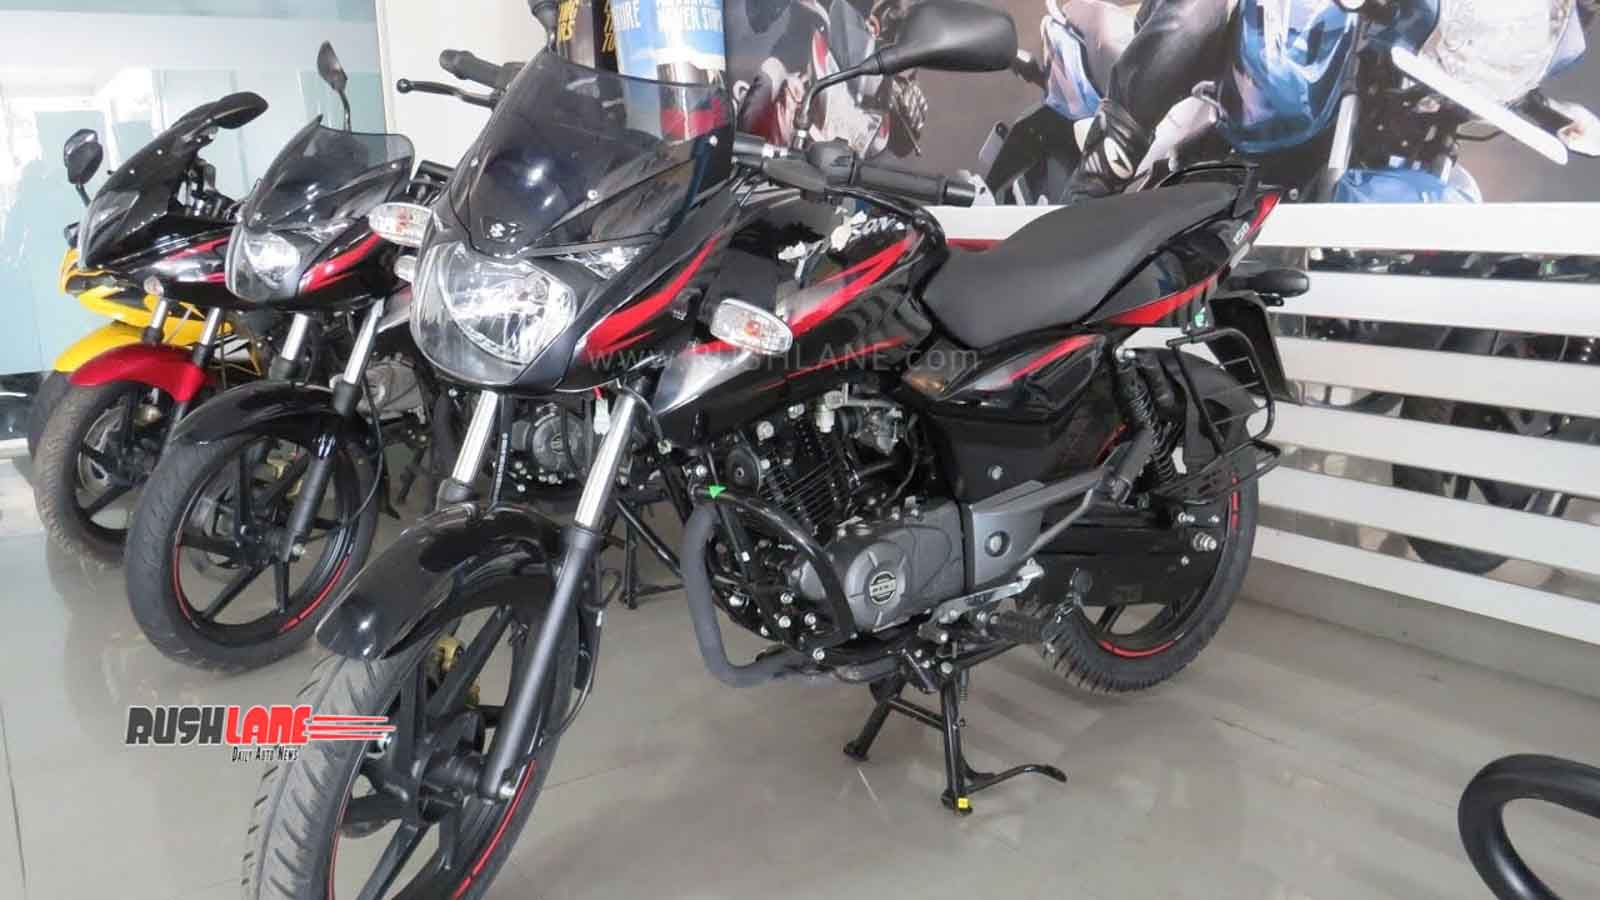 Bajaj Pulsar 150 most searched bikes